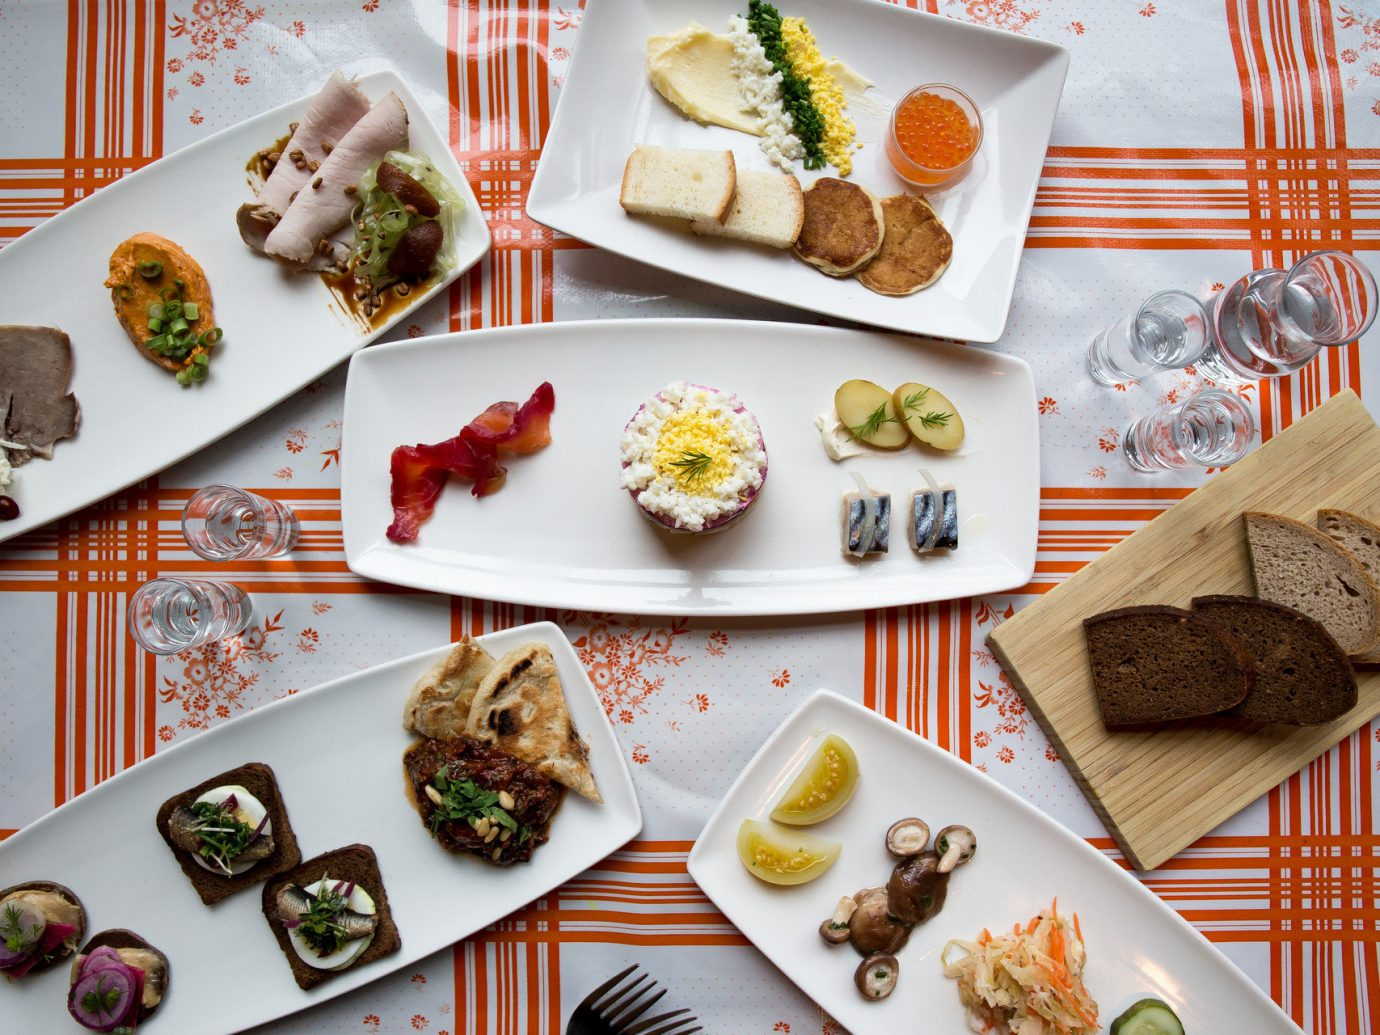 Food + Drink Style + Design Trip Ideas Weekend Getaways plate food dish meal lunch cuisine different items breakfast asian food produce baking meat several arranged